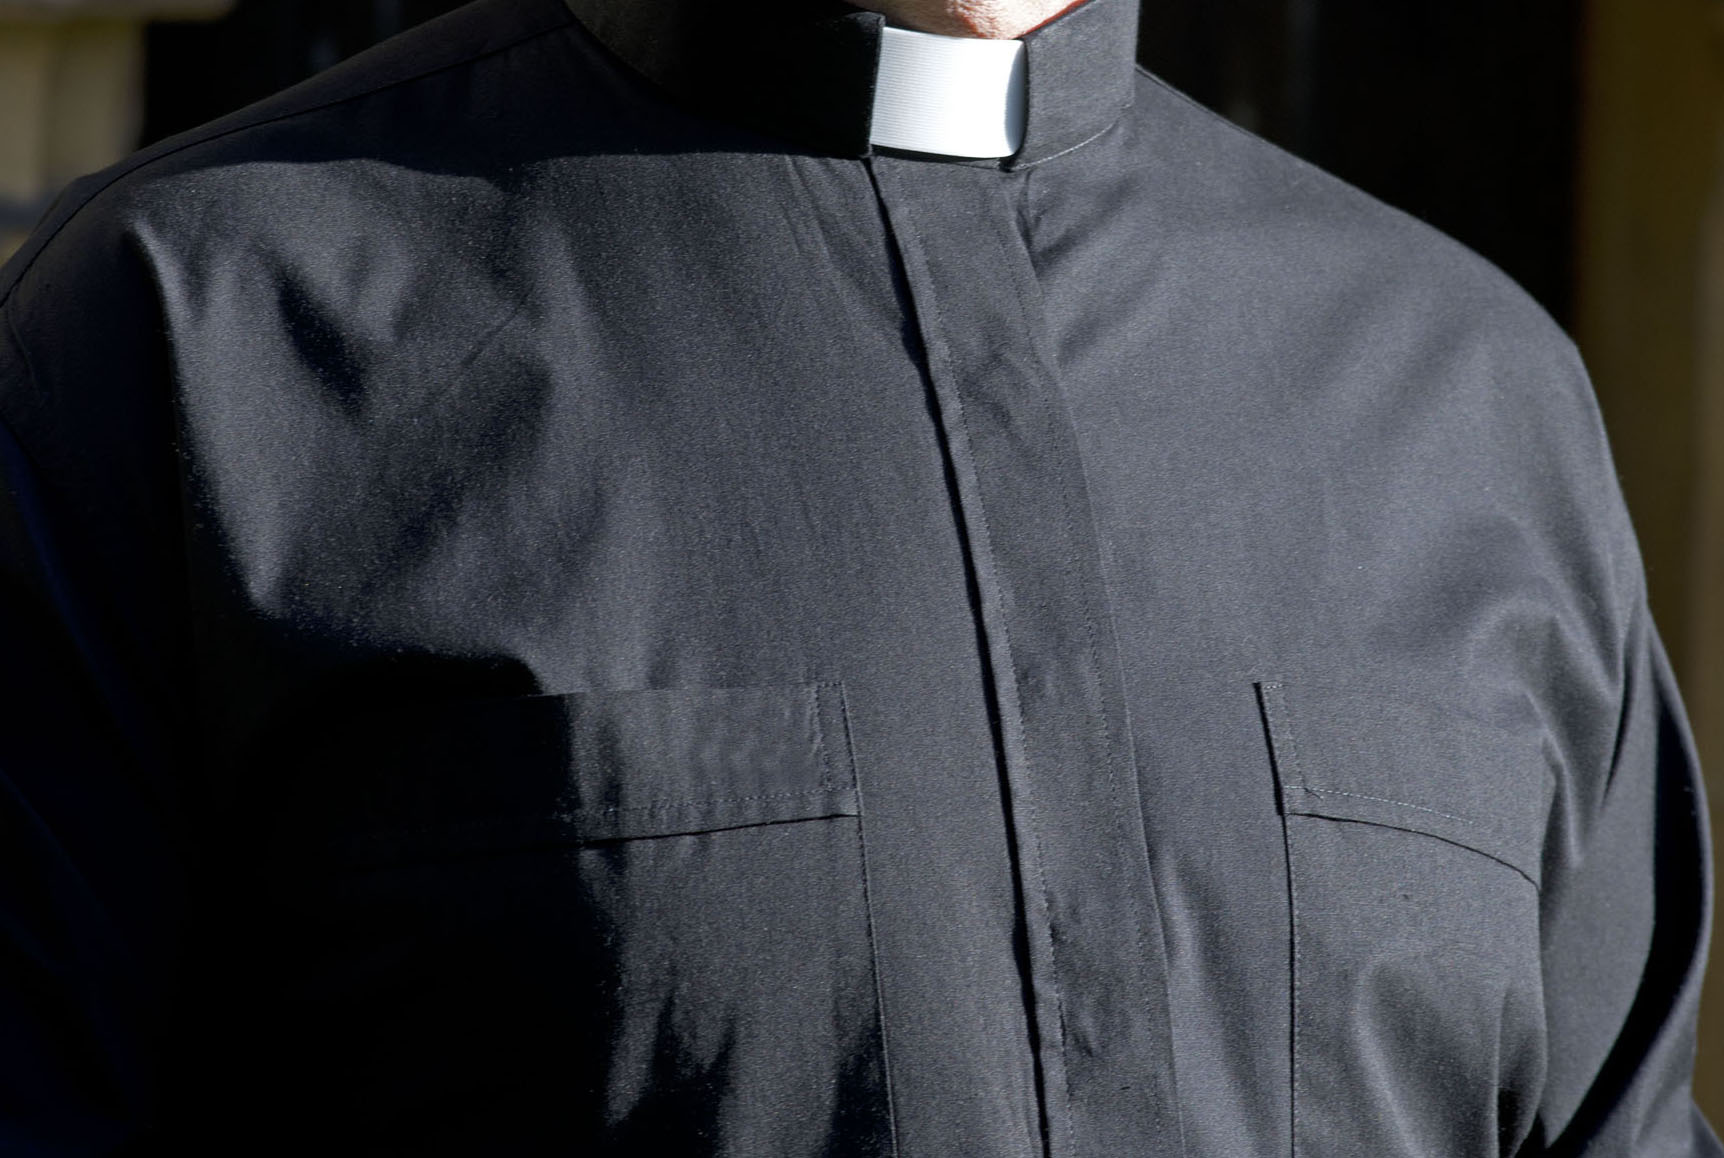 B&H Clergy Shirts and Collars